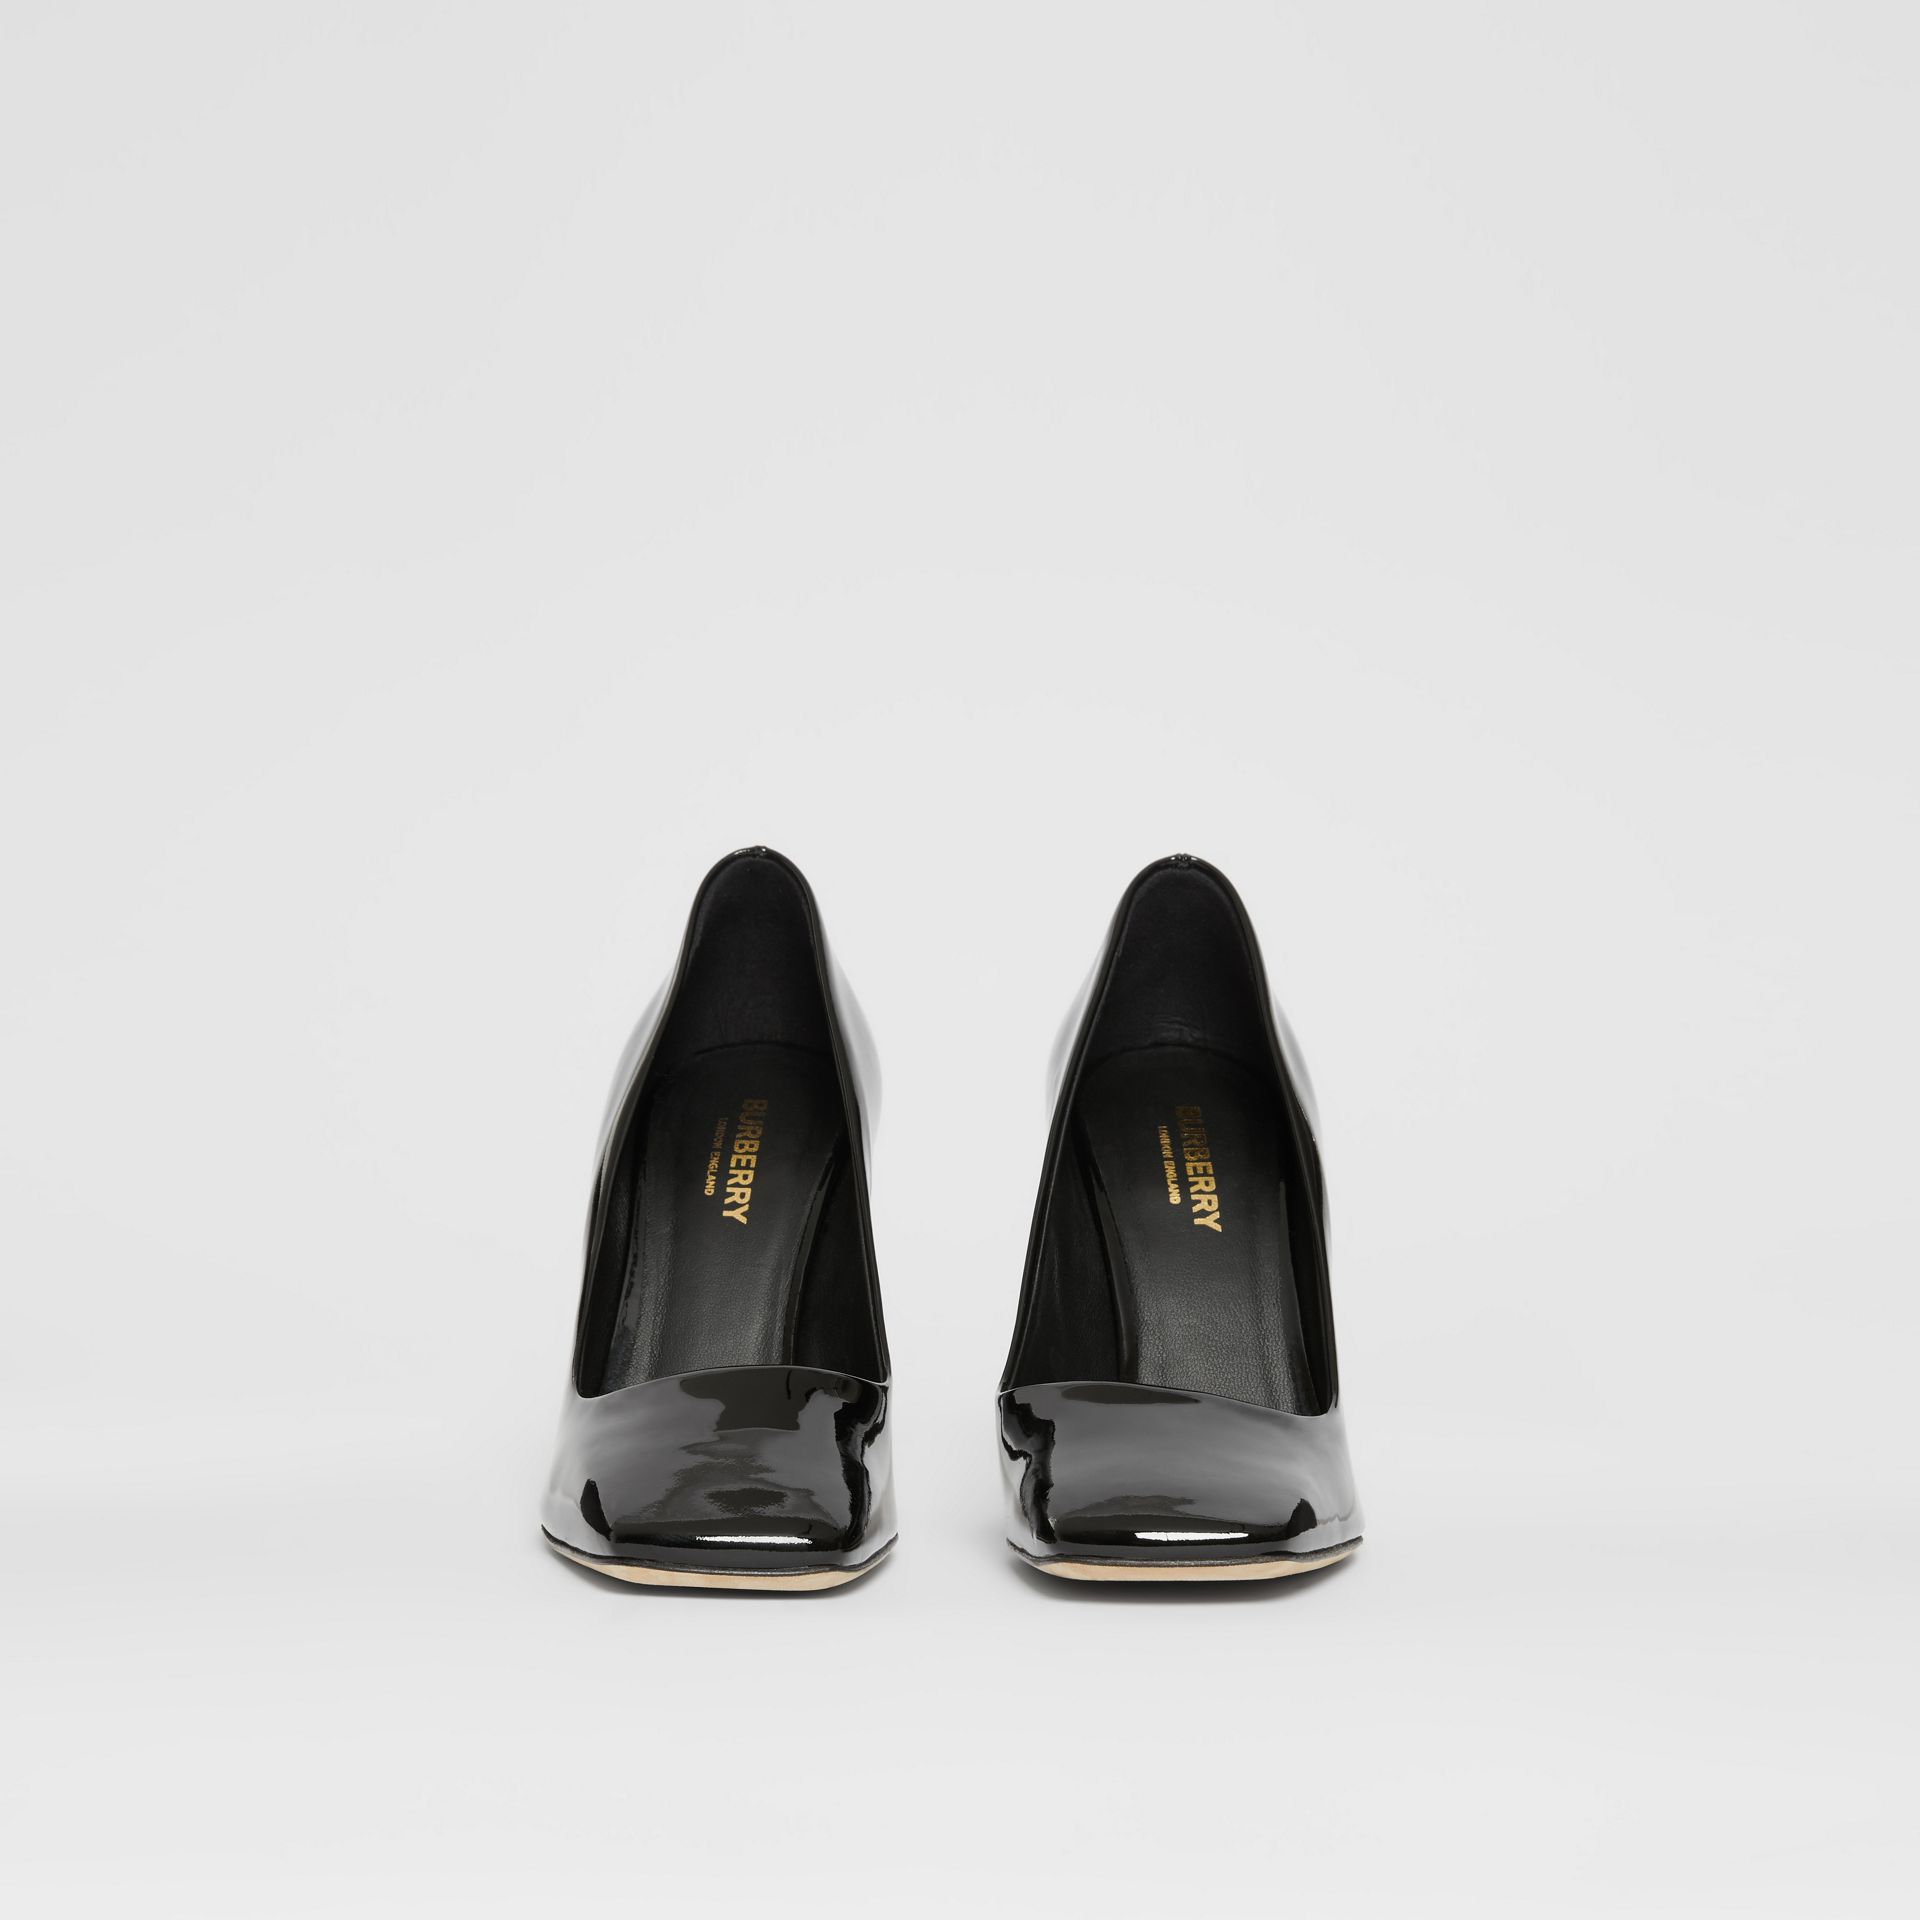 D-ring Detail Patent Leather Square-toe Pumps in Black - Women | Burberry United Kingdom - gallery image 3